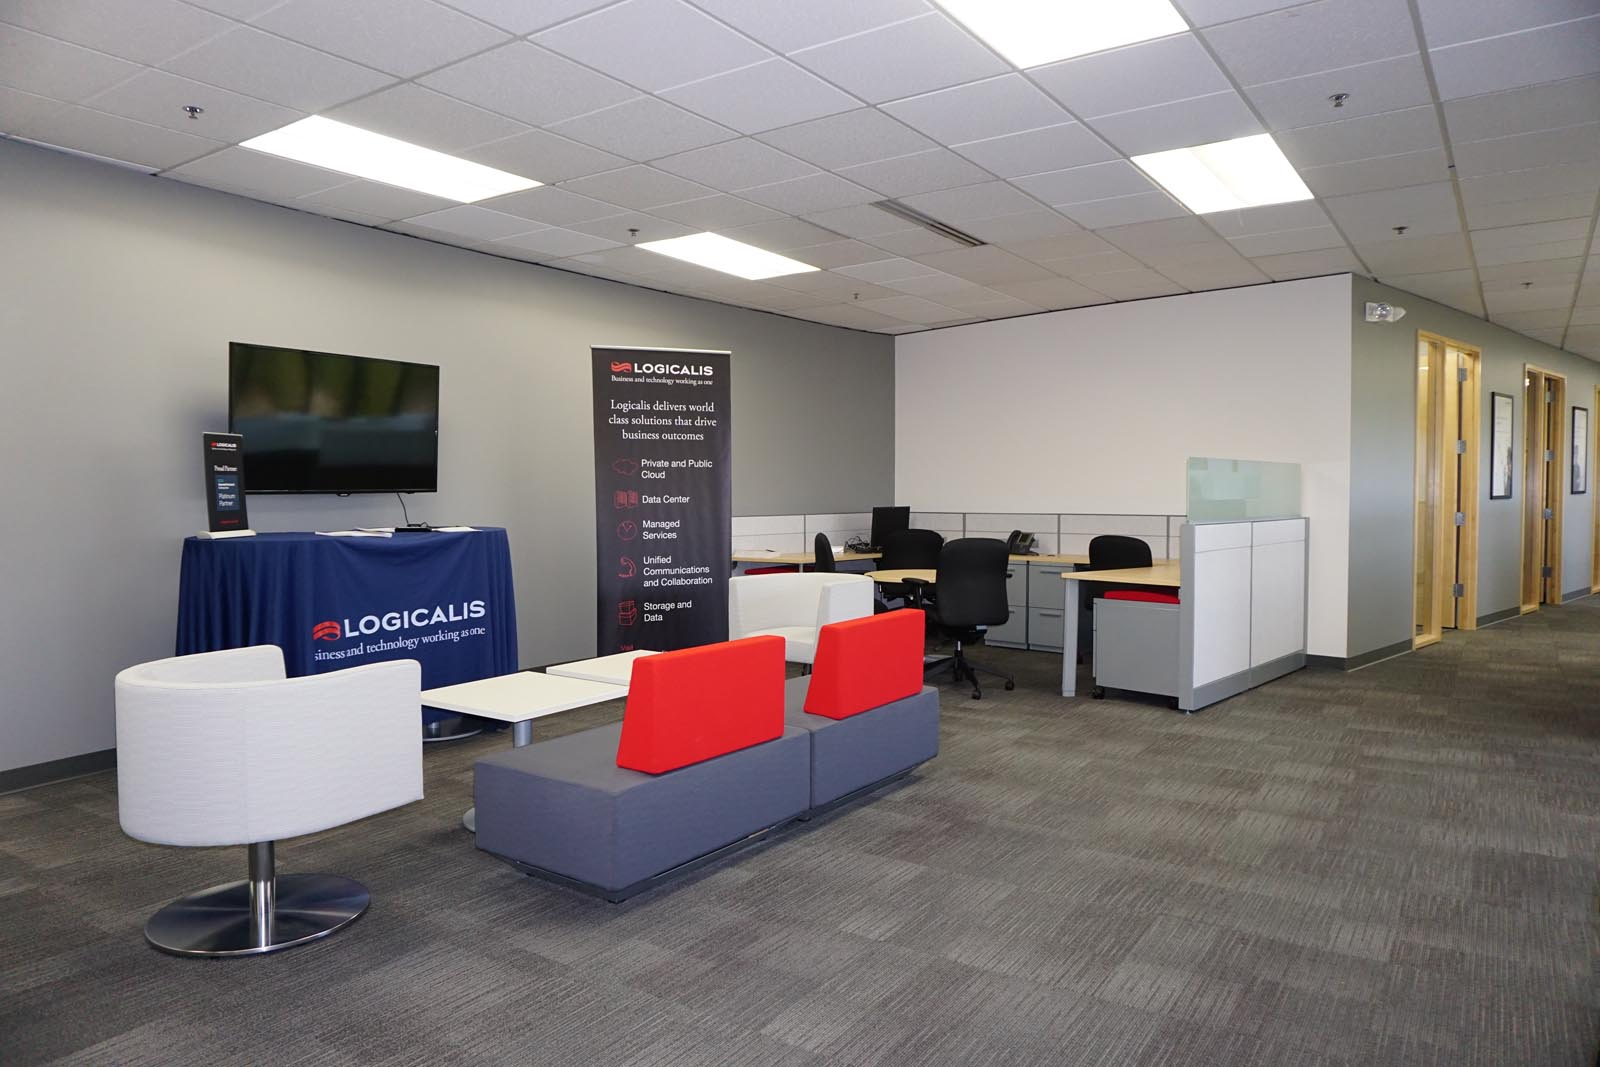 Logicalis seating area and sinage